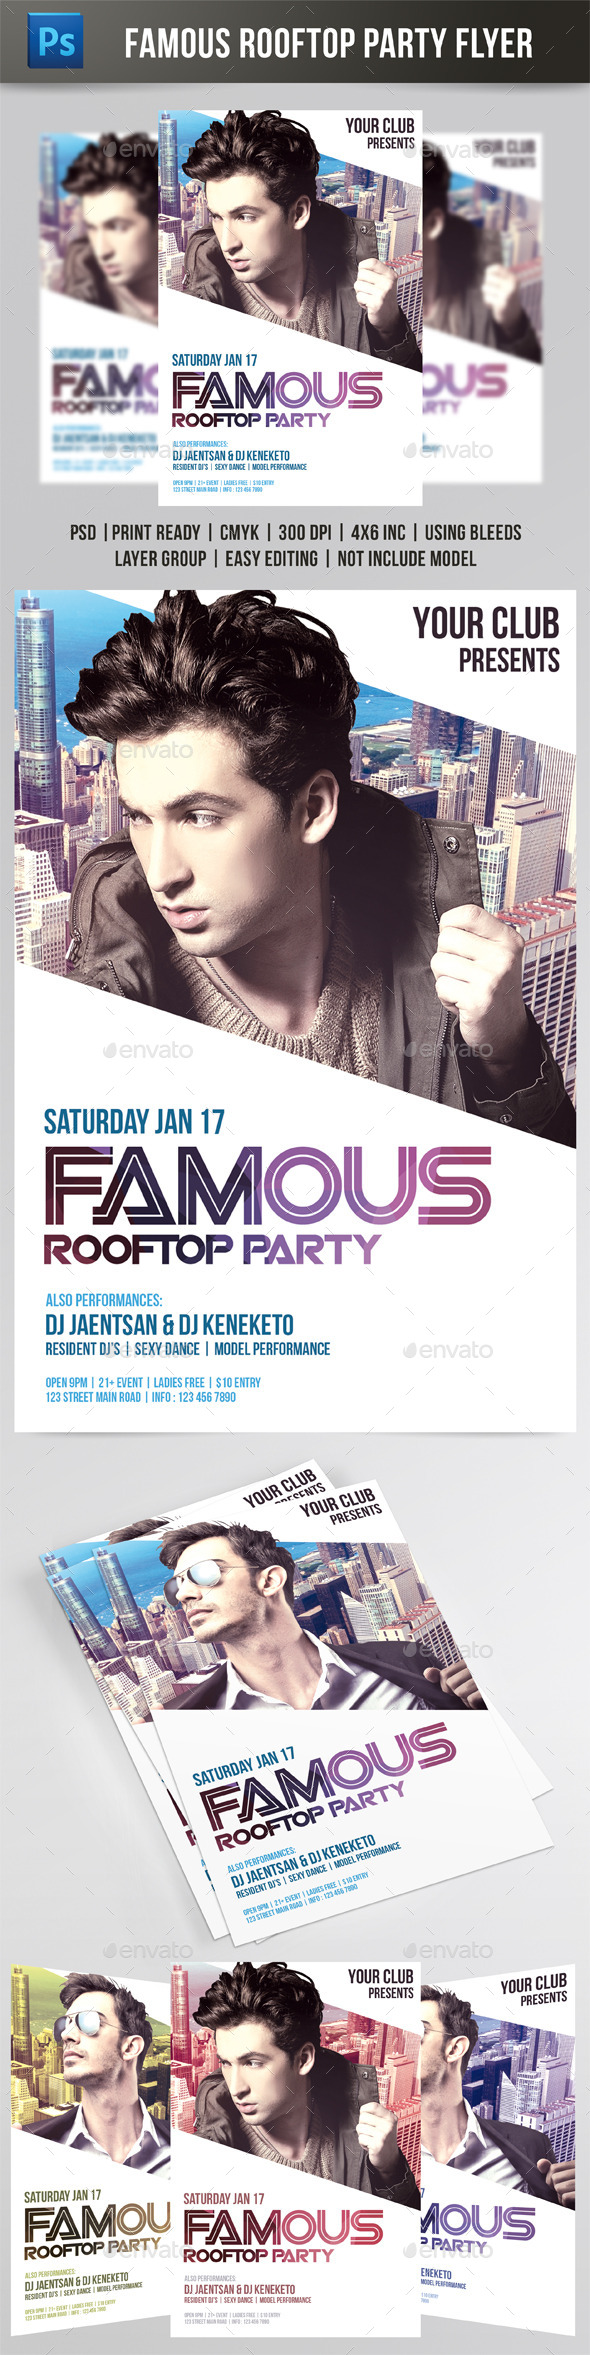 GraphicRiver Famous Rooftop Party Flyer 9598395